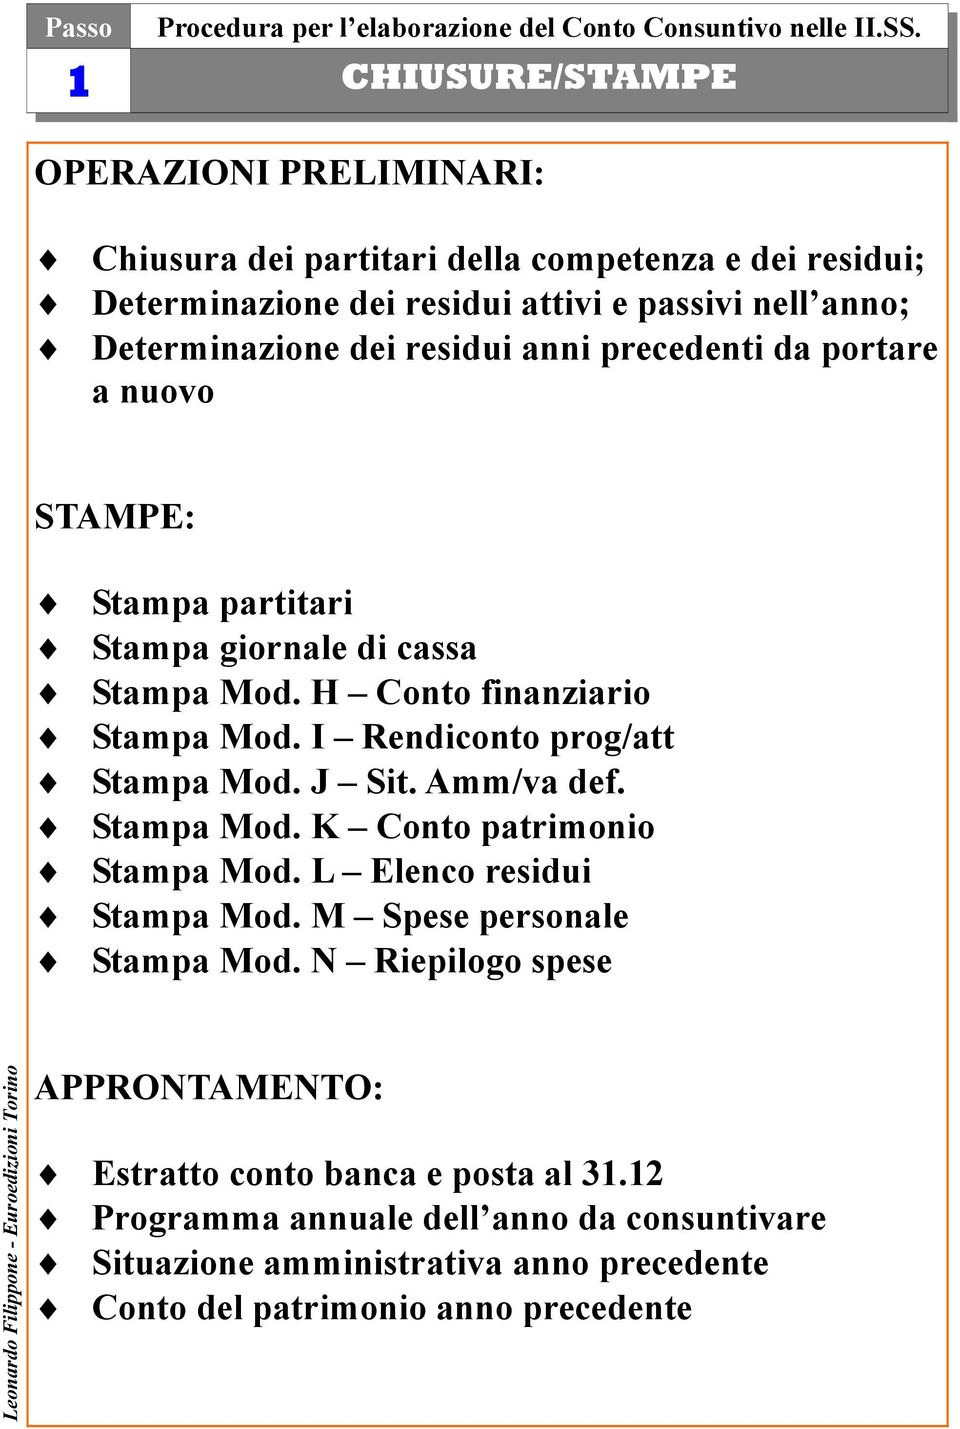 I Rendiconto prog/att Stampa Mod. J Sit. Amm/va def. Stampa Mod. K Conto patrimonio Stampa Mod. L Elenco residui Stampa Mod. M Spese personale Stampa Mod.